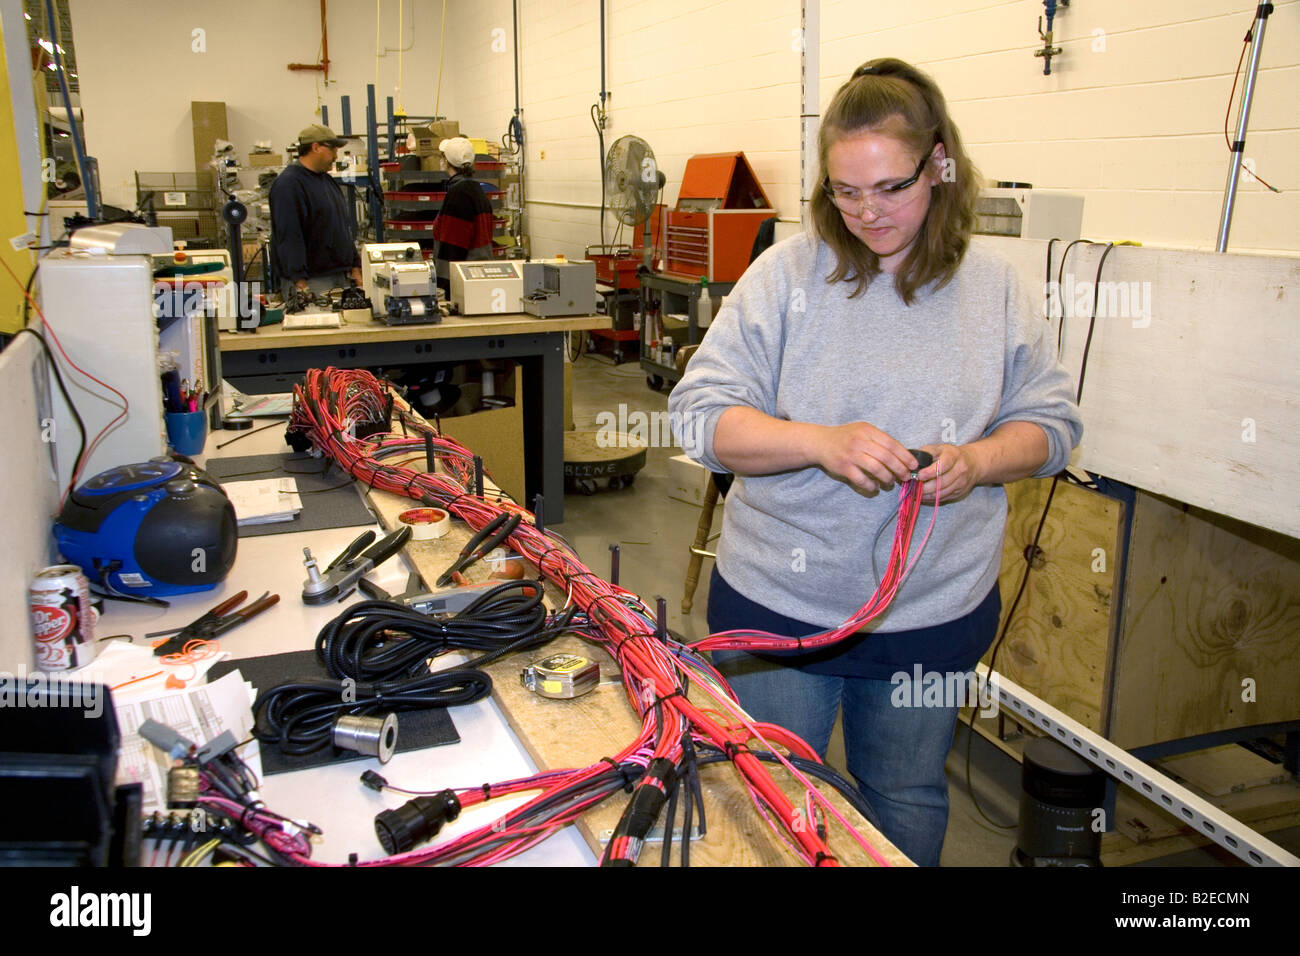 Wiring Harness Stock Photos Images Alamy Wire Manufacturer Female Worker With Assembly At Spartan Motors Truck Chassis Manufacturing In Charlotte Michigan